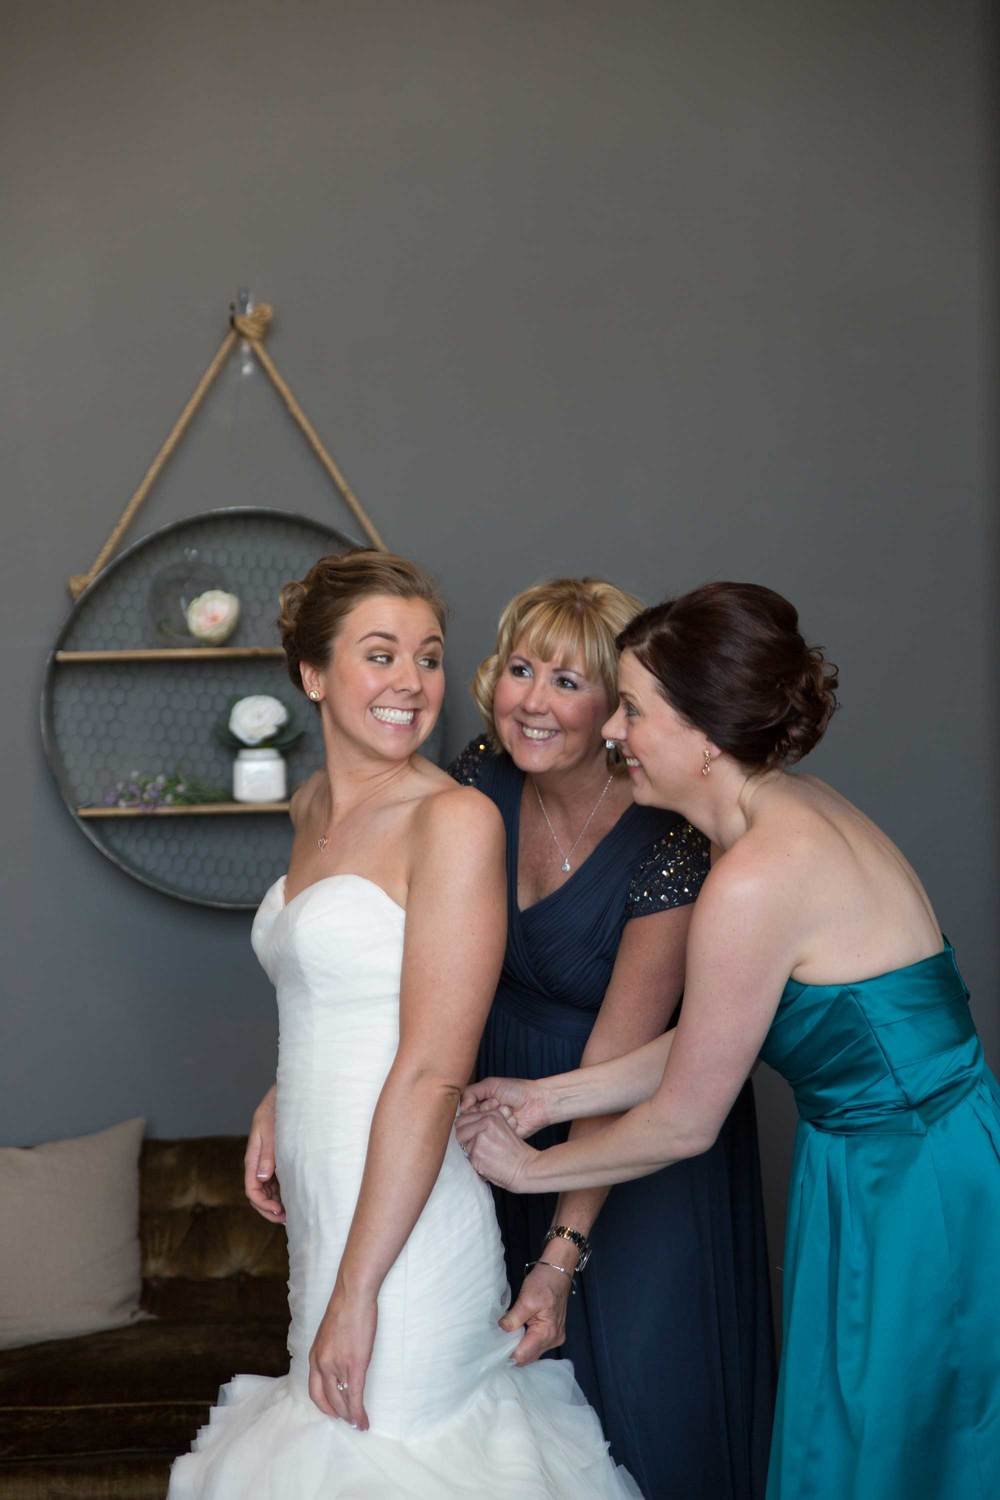 3. ALL SMILES AS OUR BRIDE'S MOM & MAID OF HONOR LACES UP HER DRESS.